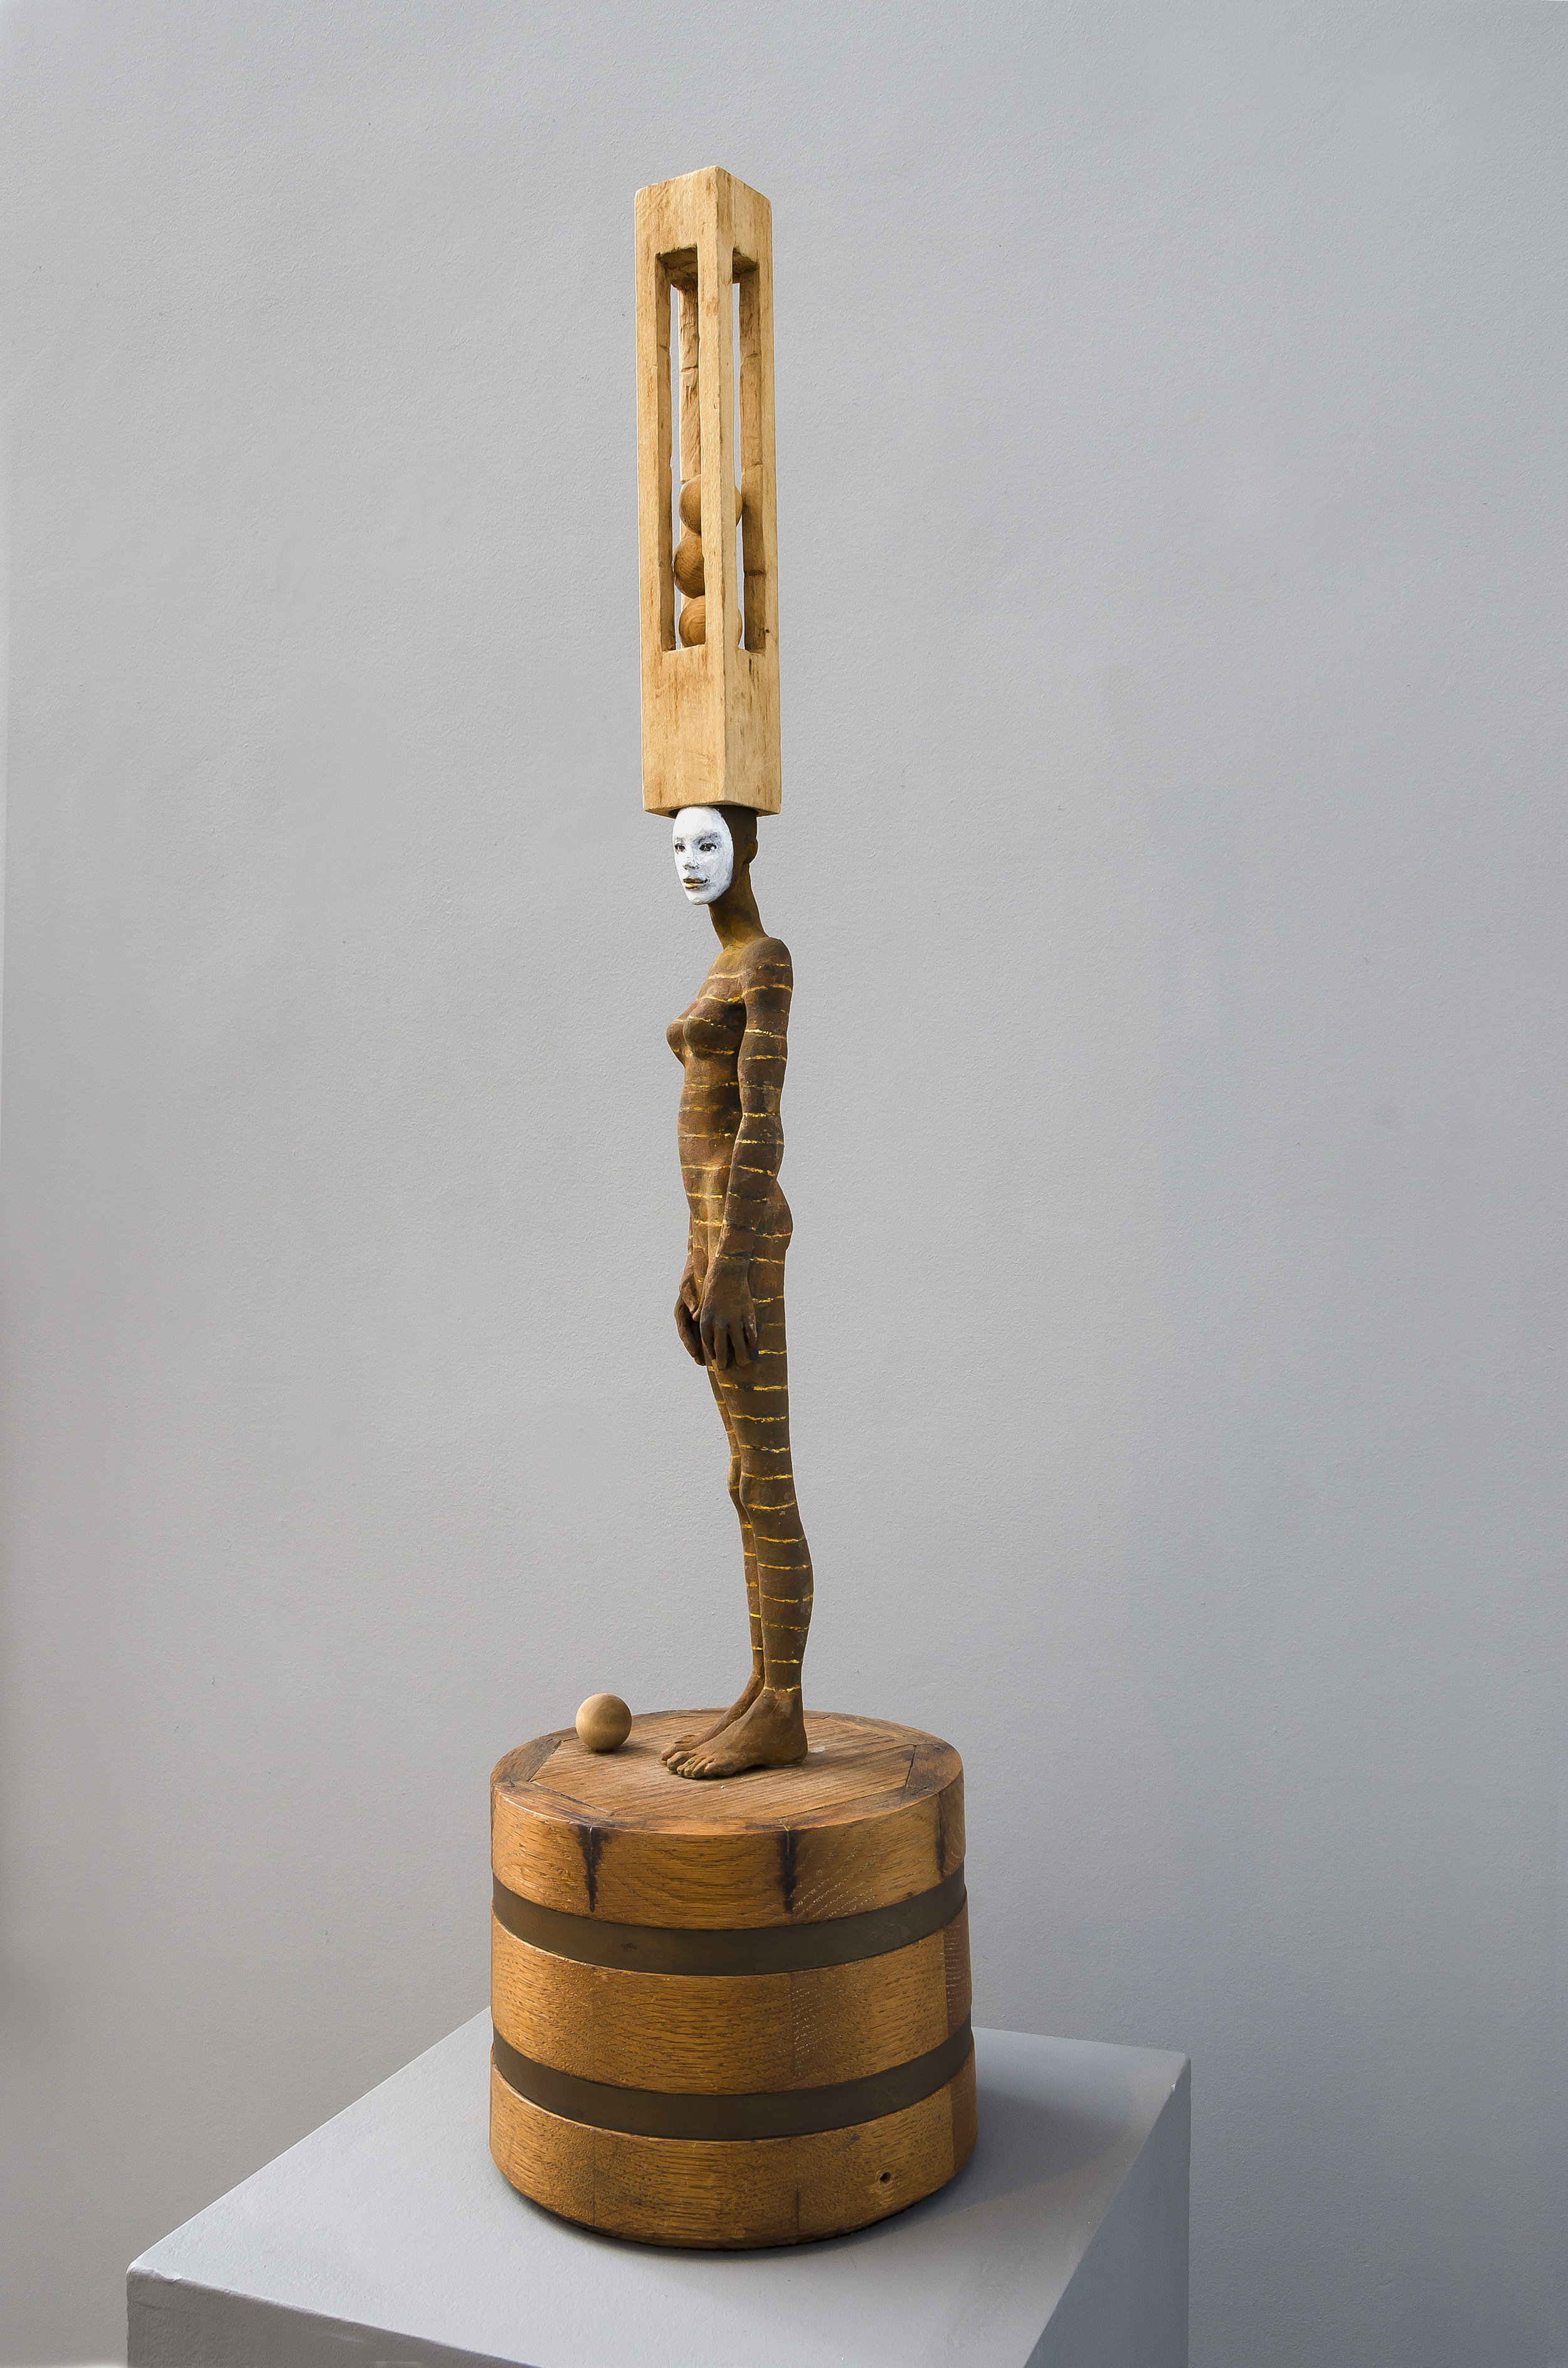 Cecilia Z. Miguez (b. 1955)   Balancing Act , 2011  bronze and wood 34 x 8 1/2 x 8 1/2 inches; 86.4 x 21.6 x 21.6 centimeters